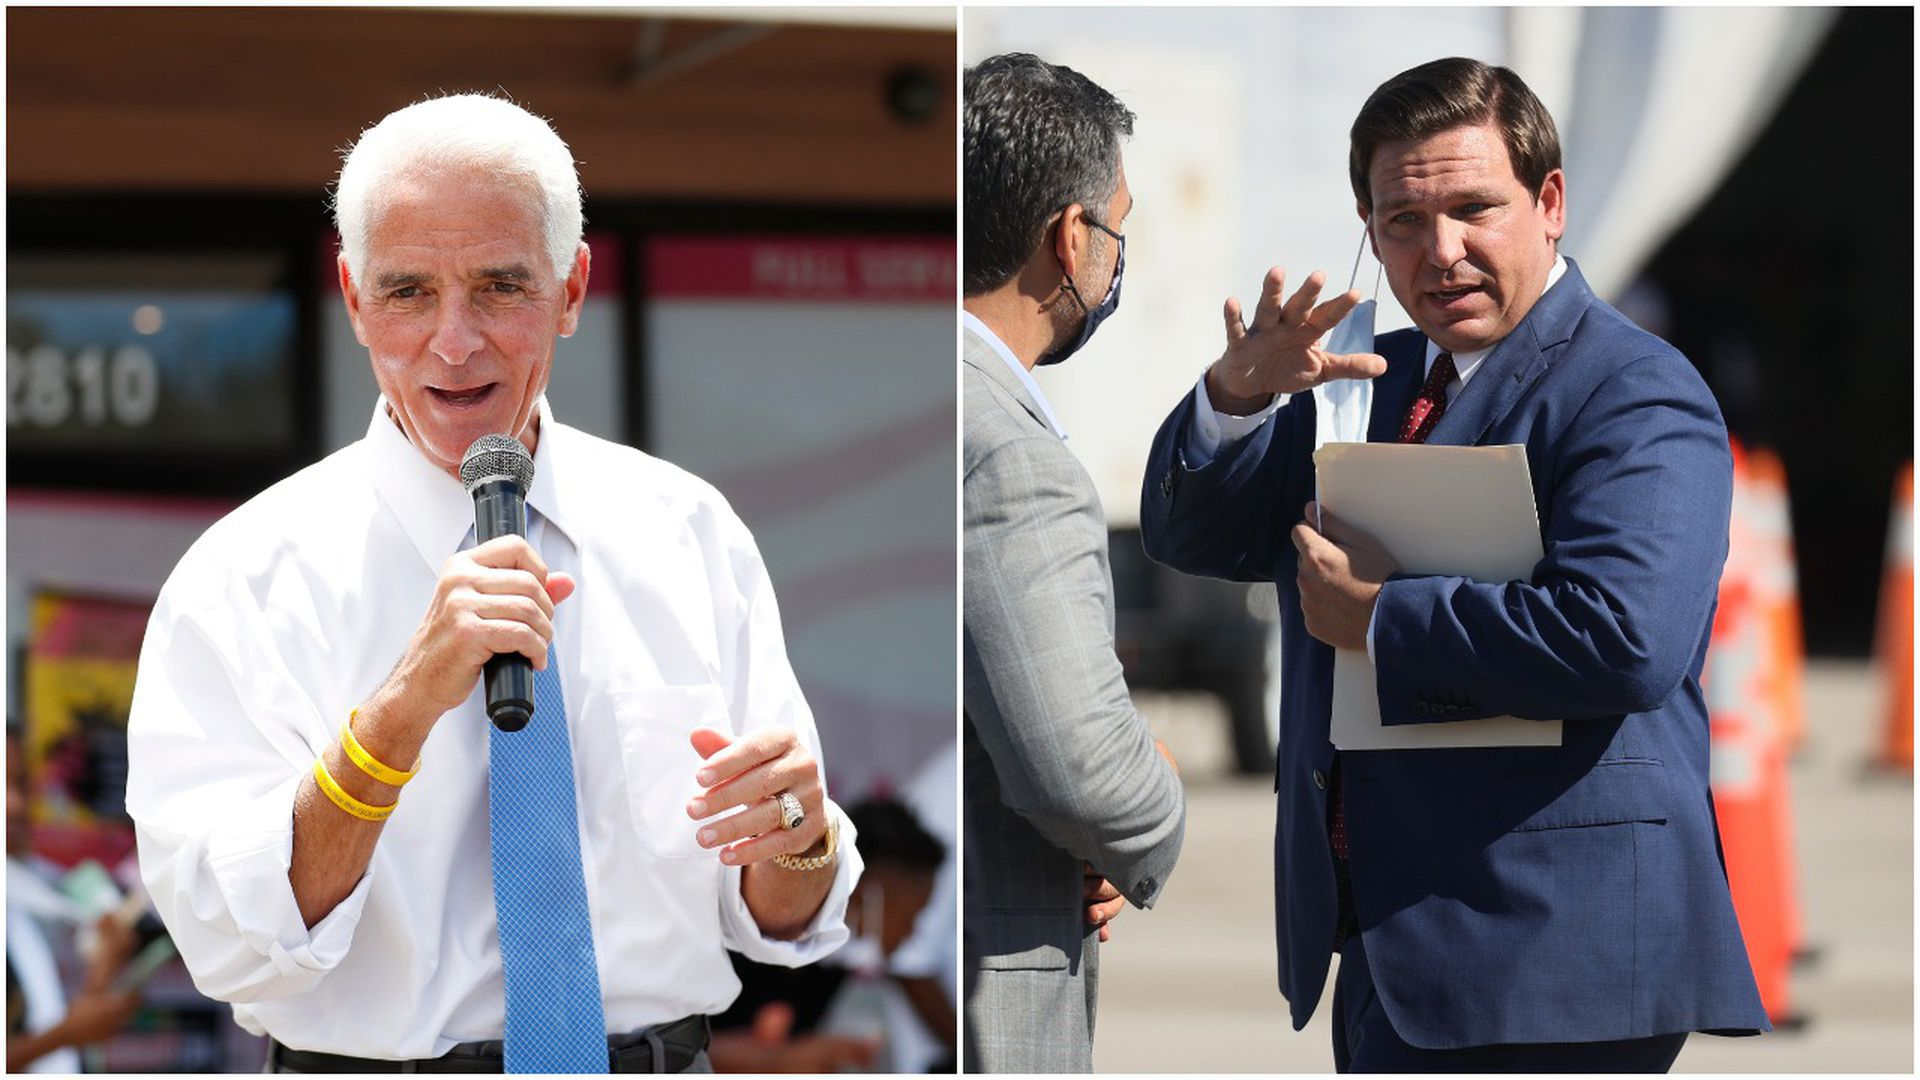 Collage picture with Rep. Charlie Crist on the left and Florida Gov. Ron DeSantis on the right